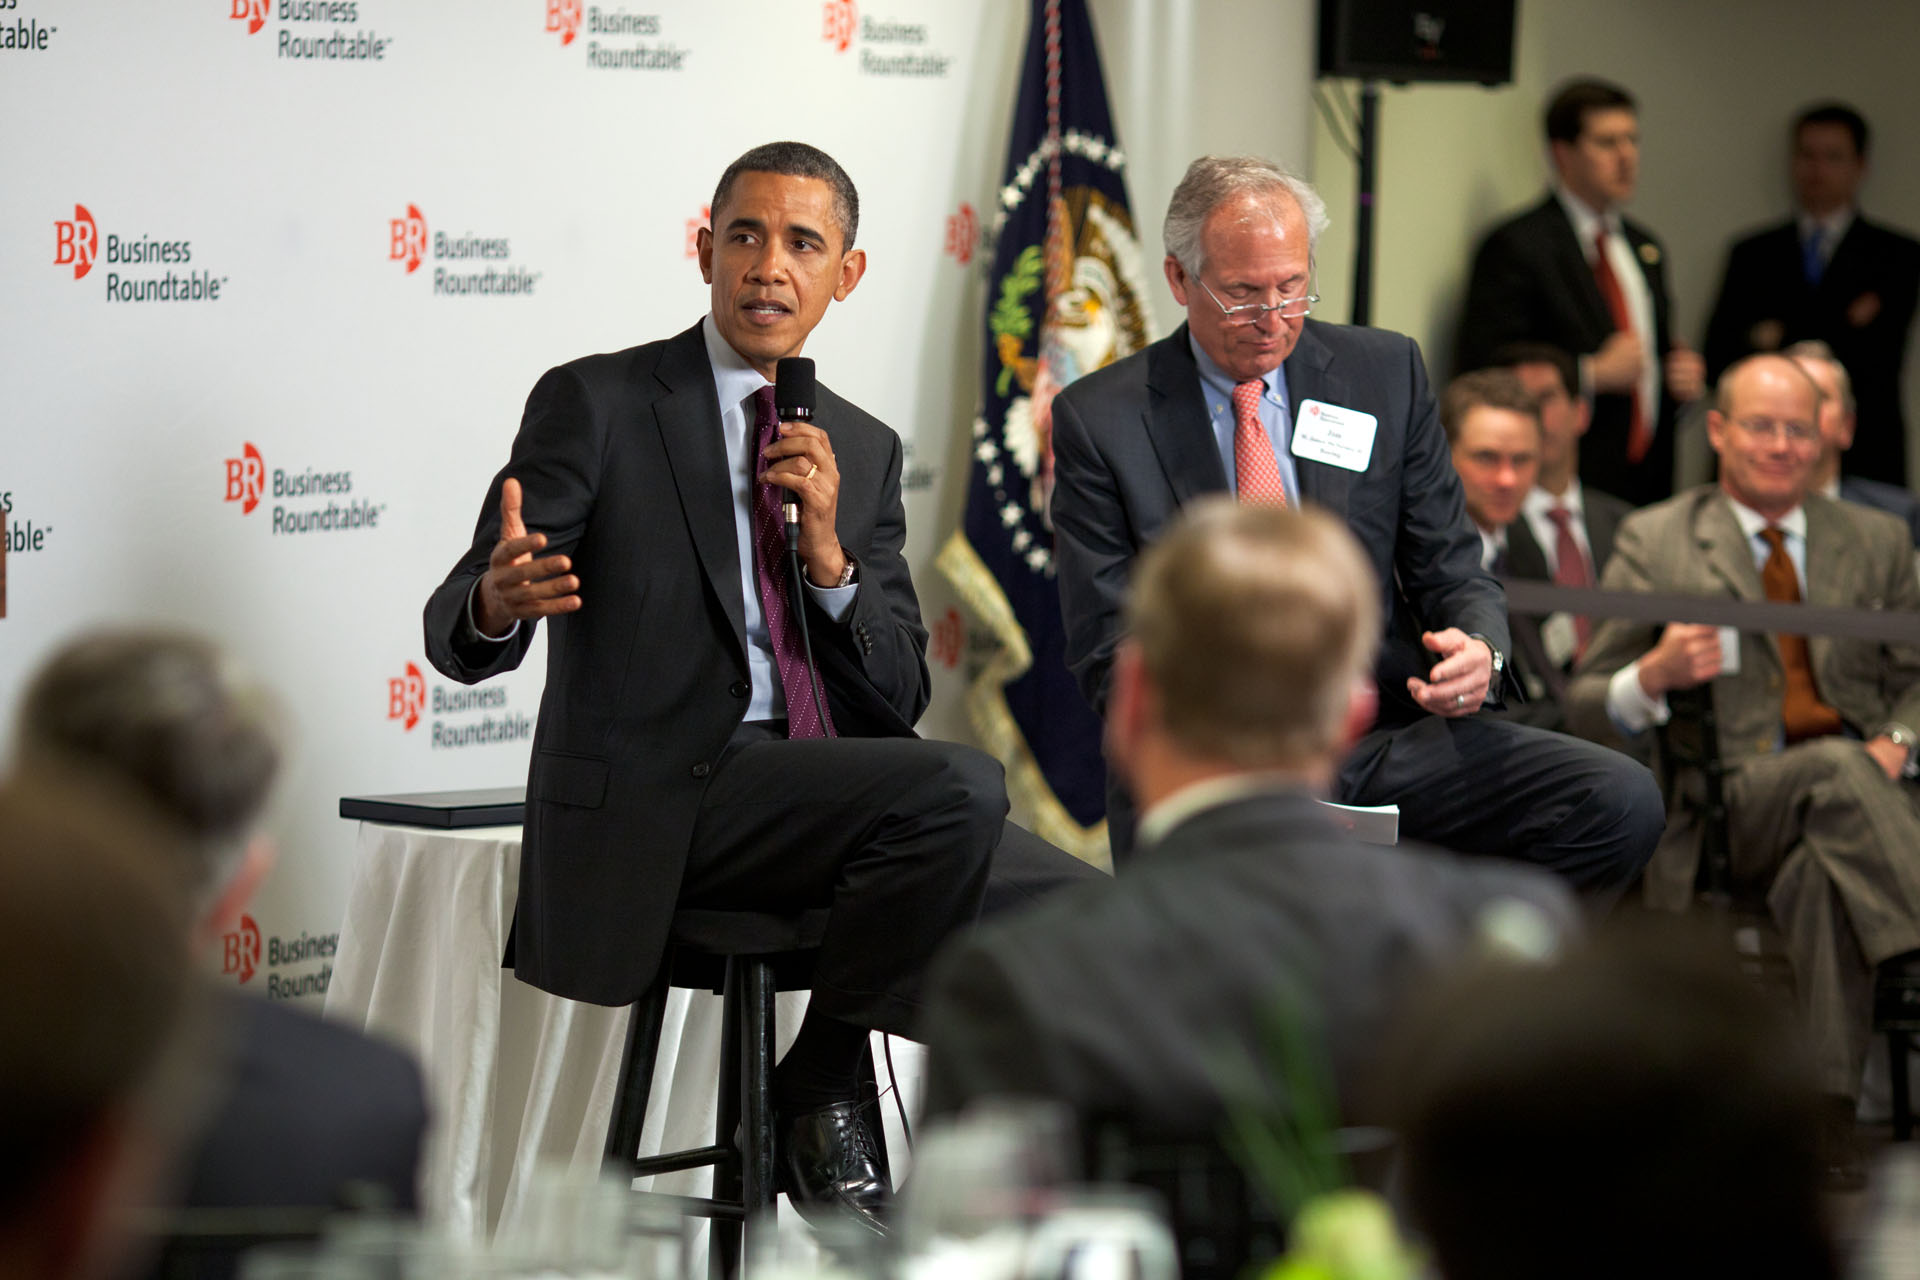 President Barack Obama at the Business Roundtable Quarterly Meeting